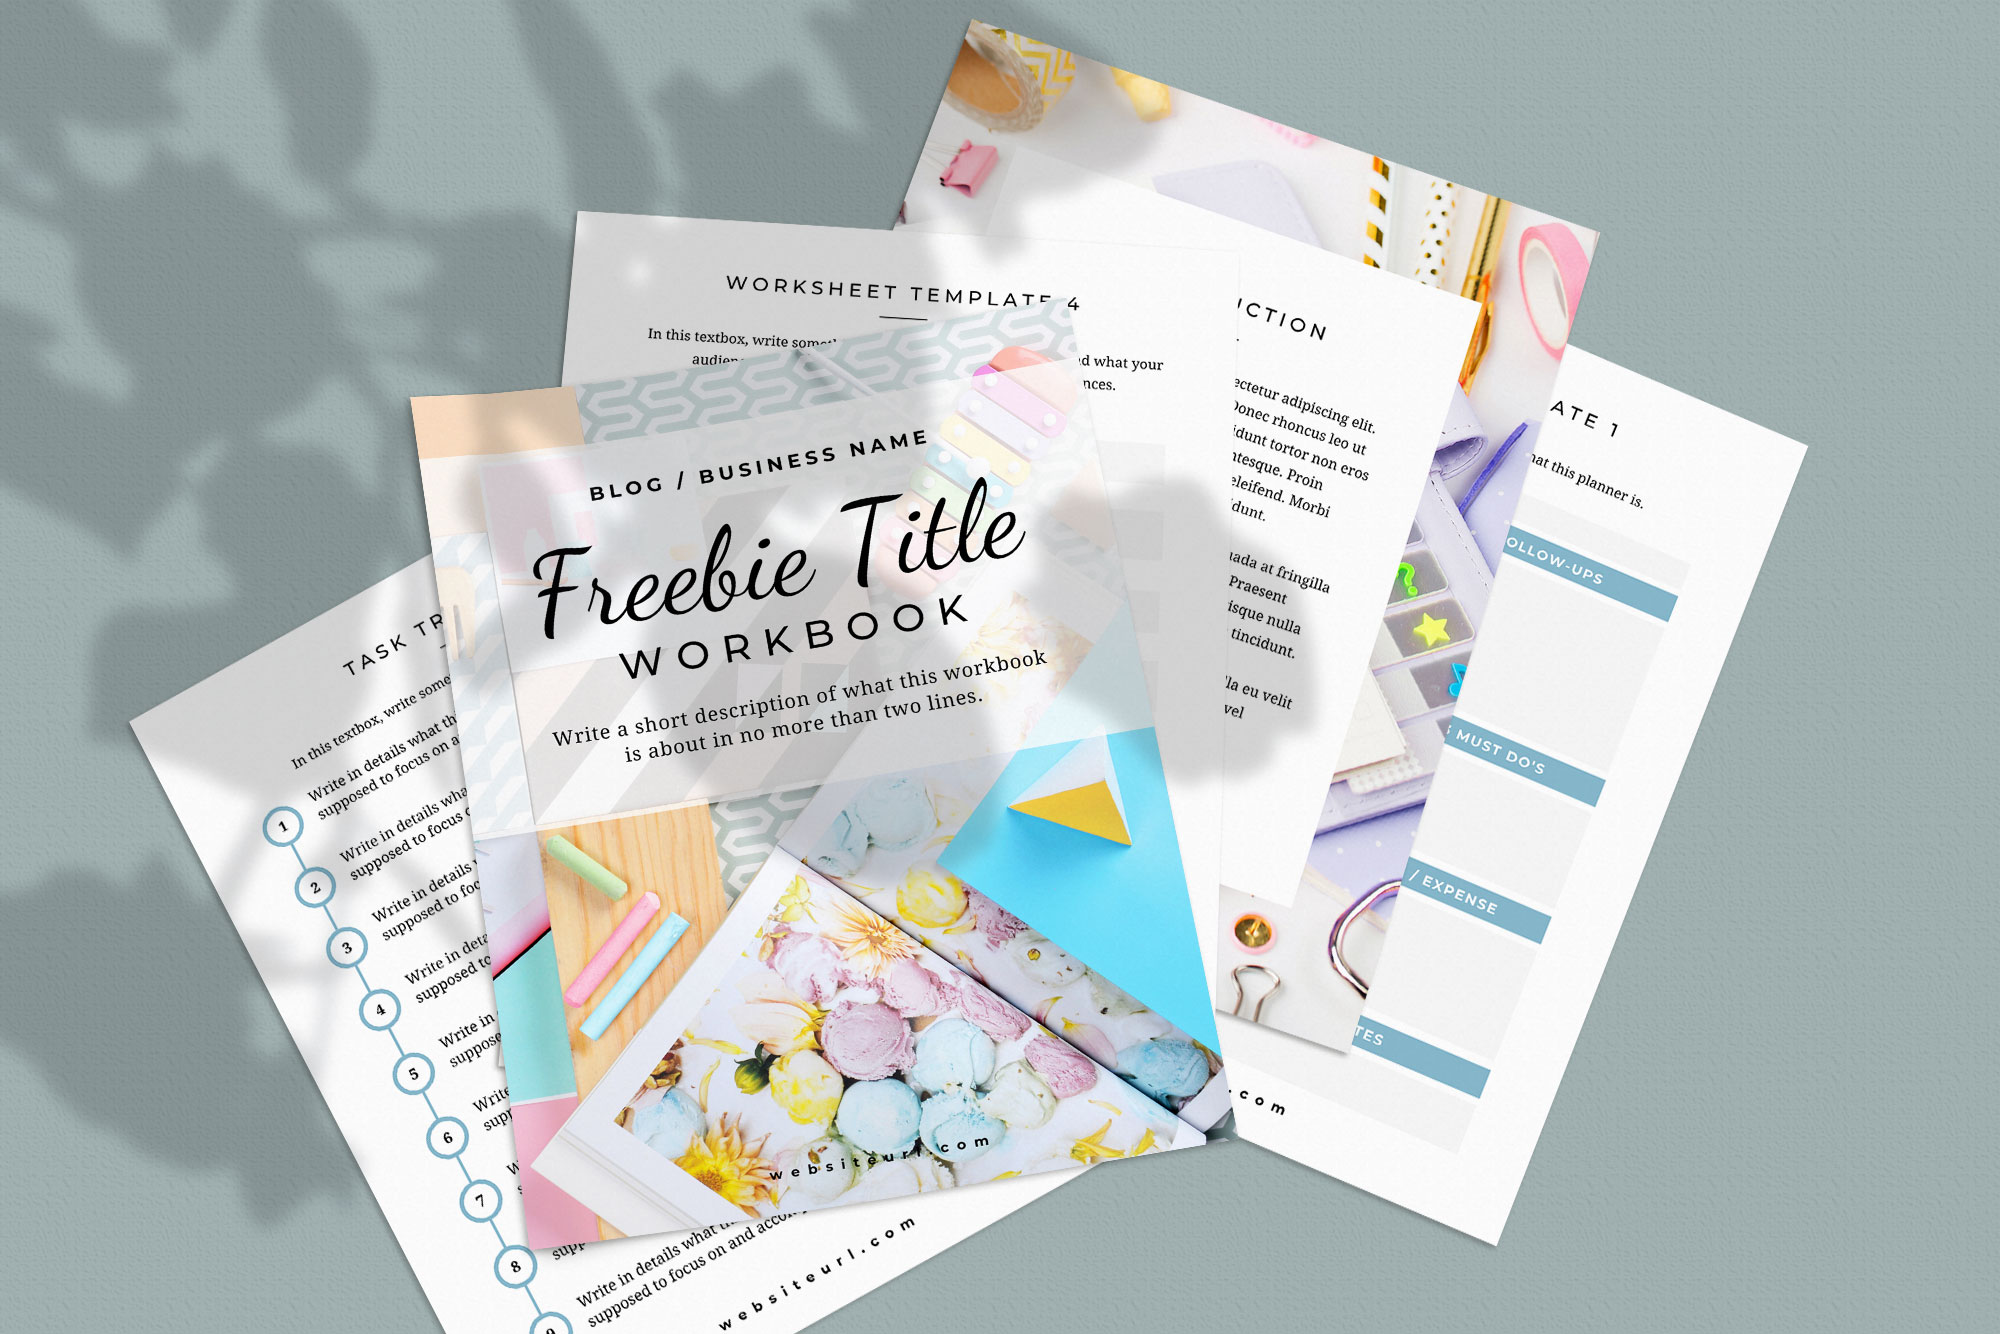 Workbook or Opt-in Freebie Canva Template | Colfax example image 7